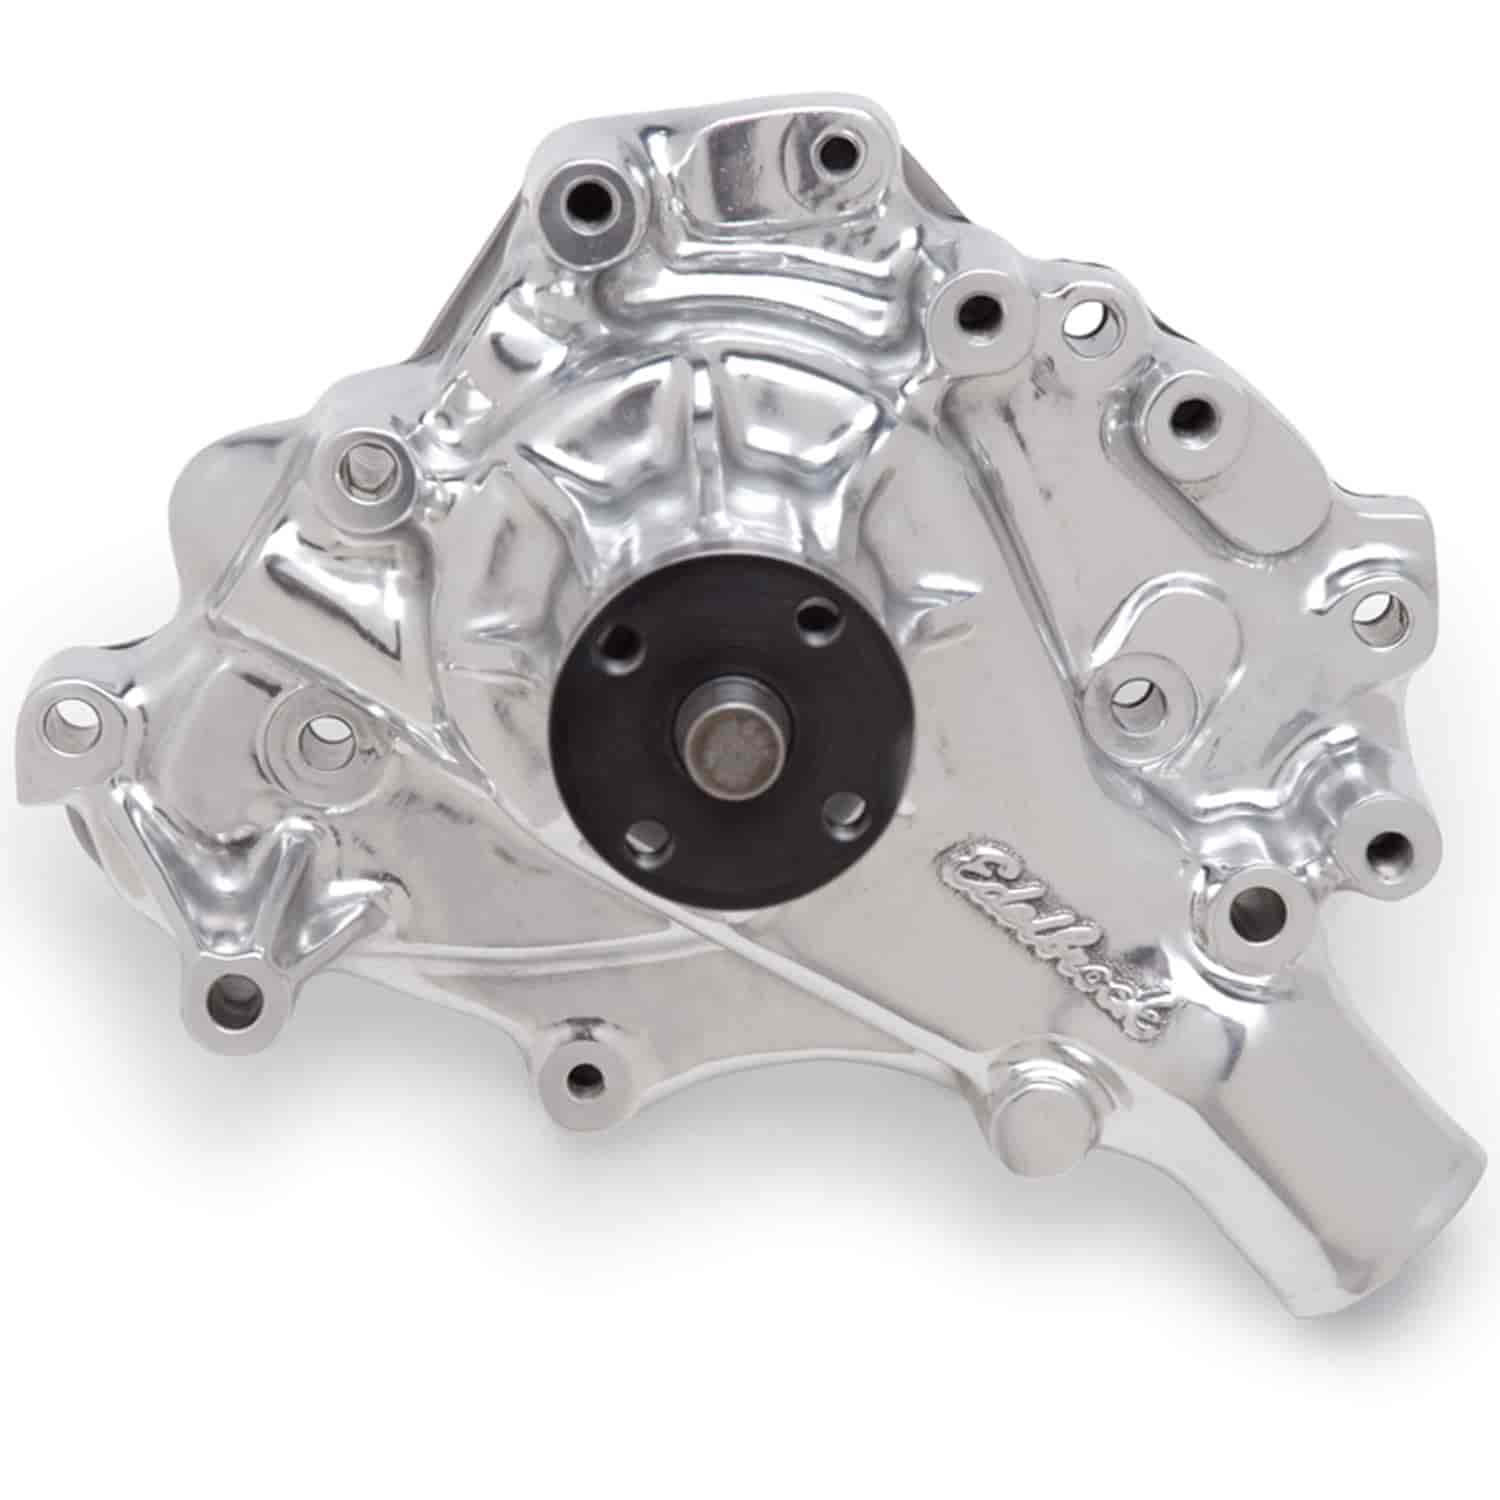 Edelbrock 8848 - Edelbrock Victor Series Water Pumps - Polished Finish